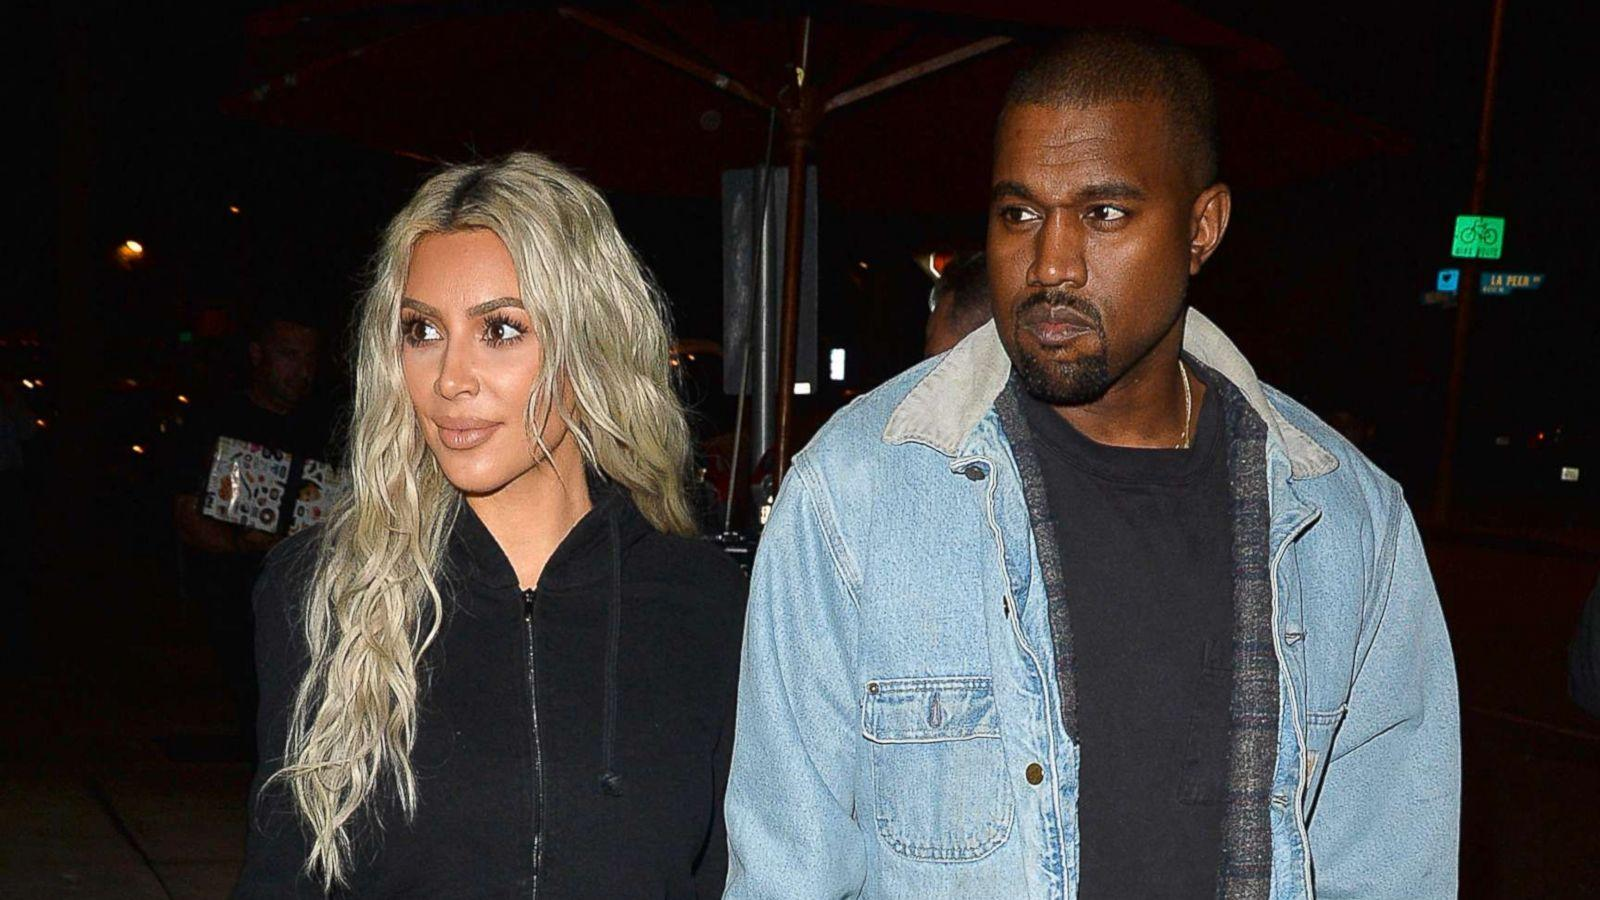 Kim Kardashian Confirms That She's Expecting Her Fourth Child With Kanye West On WWHL: 'It's A Boy!'